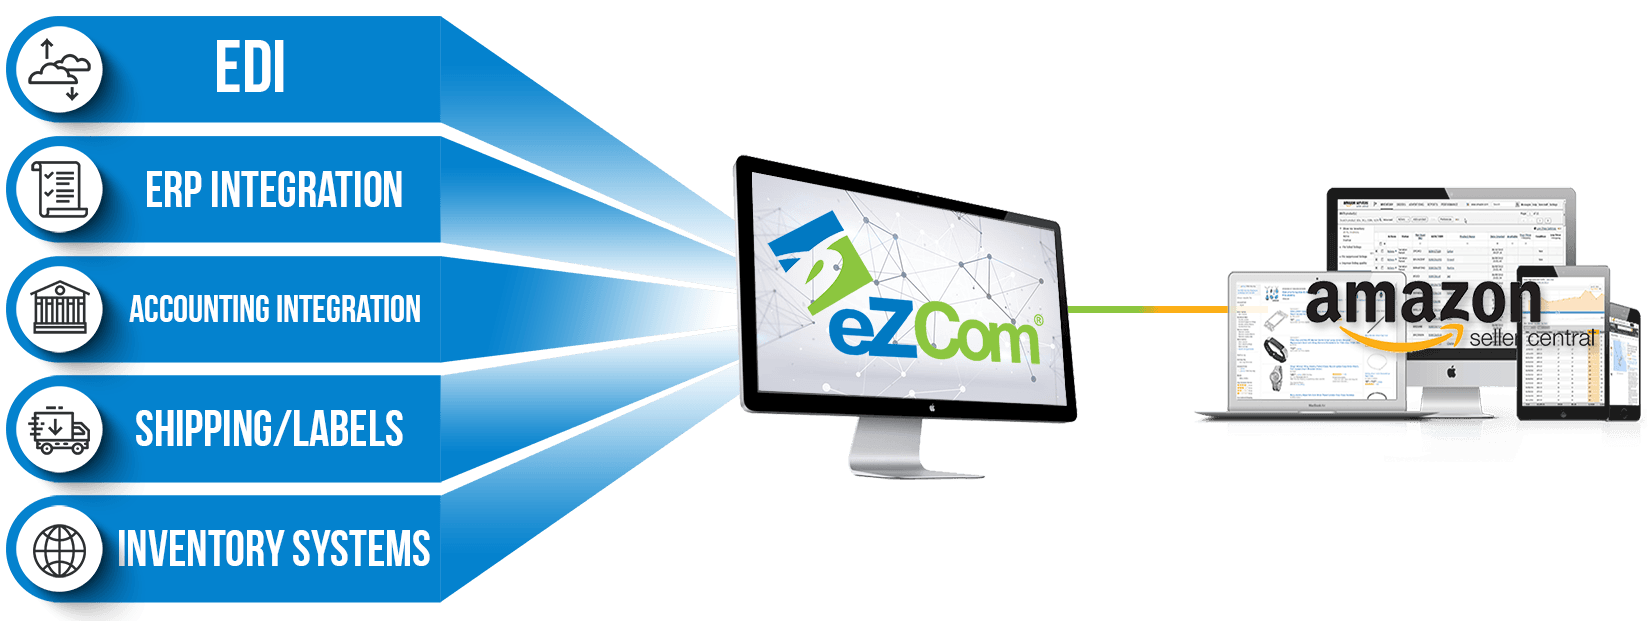 eZCom integrating with Amazon Seller Central